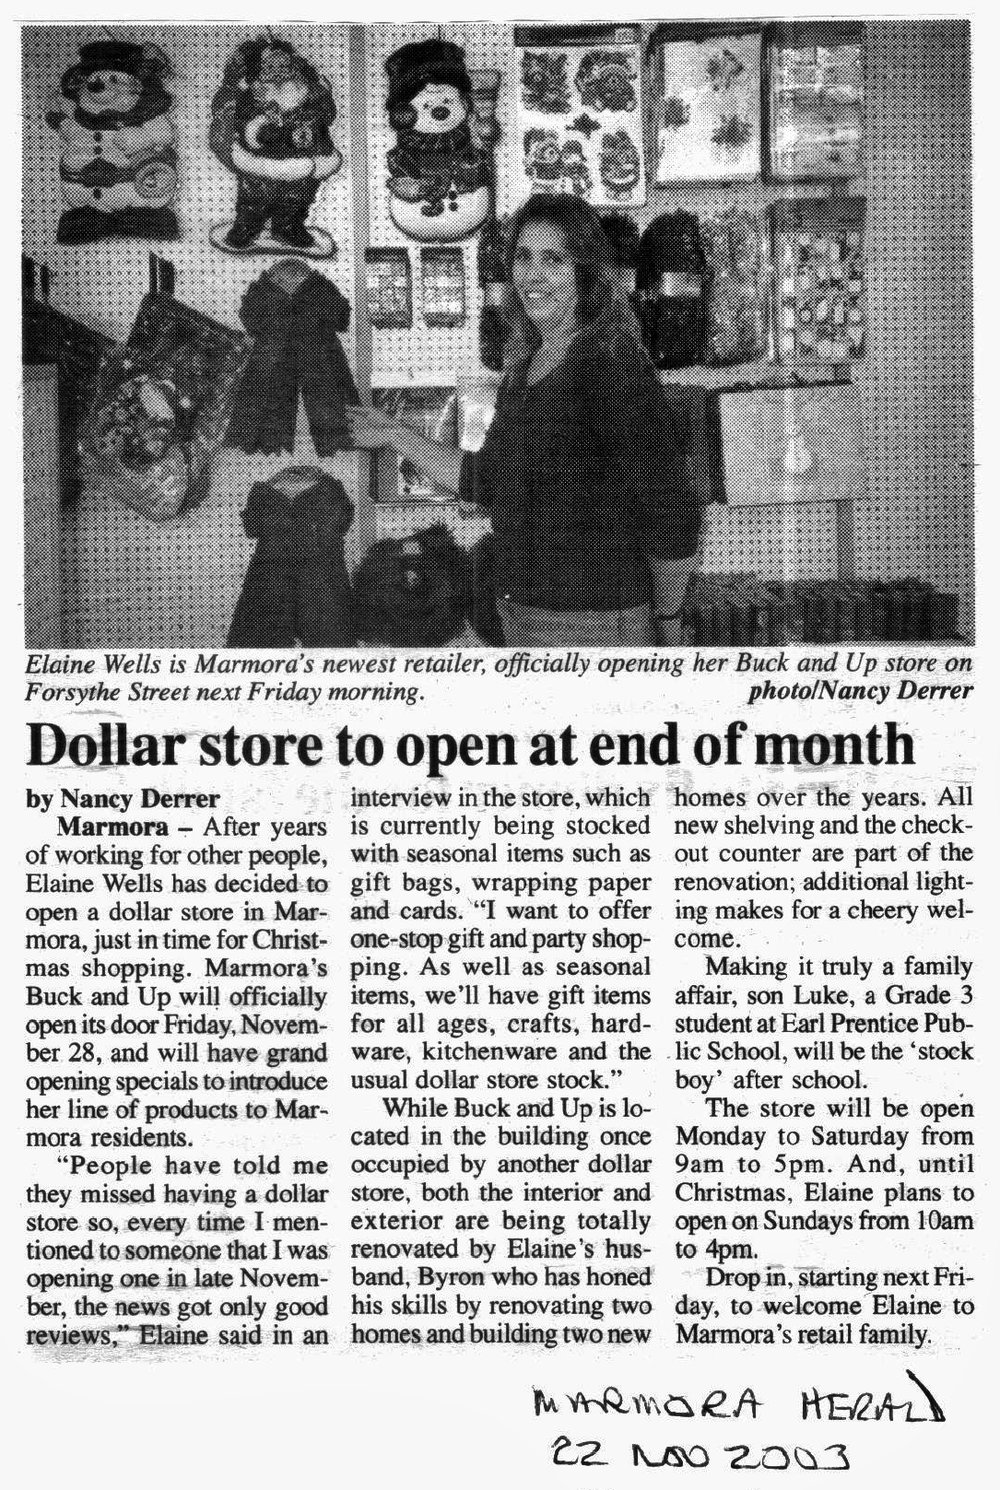 25-27 Forsyth Clippings 2 004.jpg